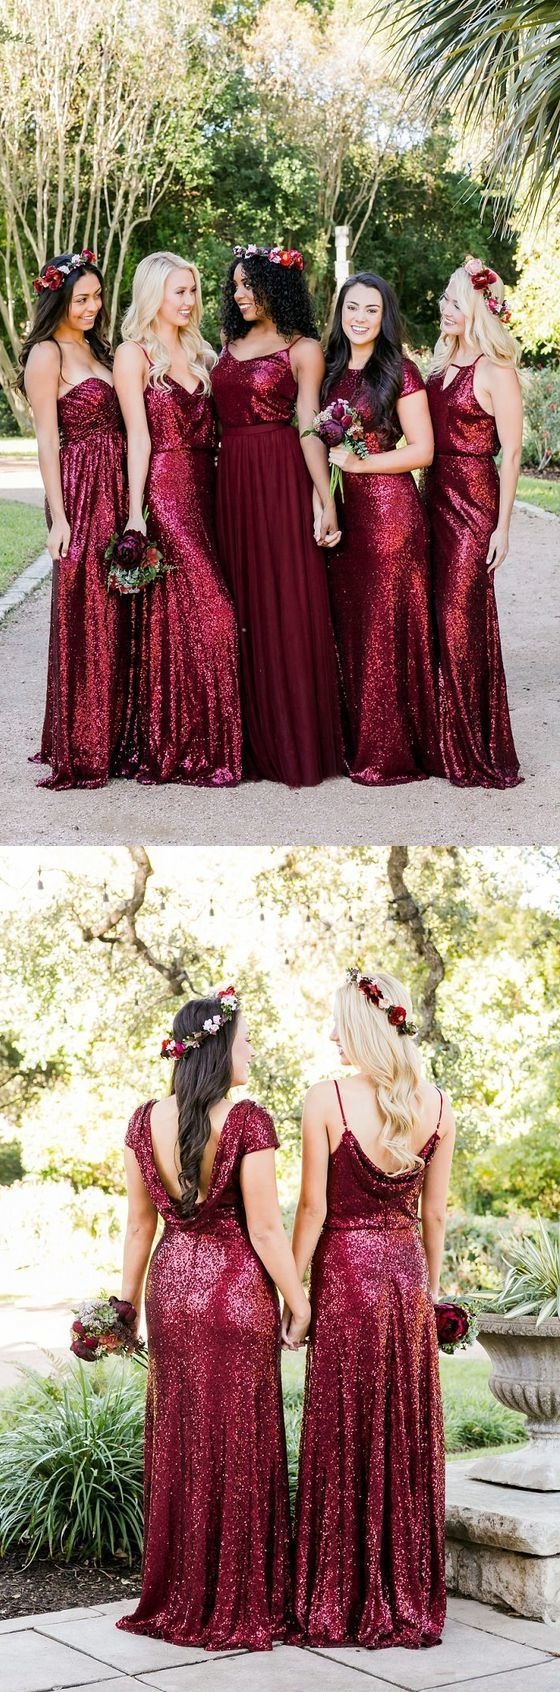 Mismatched Burgundy Bridesmaid Dresses, Sequin Bridesmaid Dresses, Long Bridesmaid Dresses Sequined